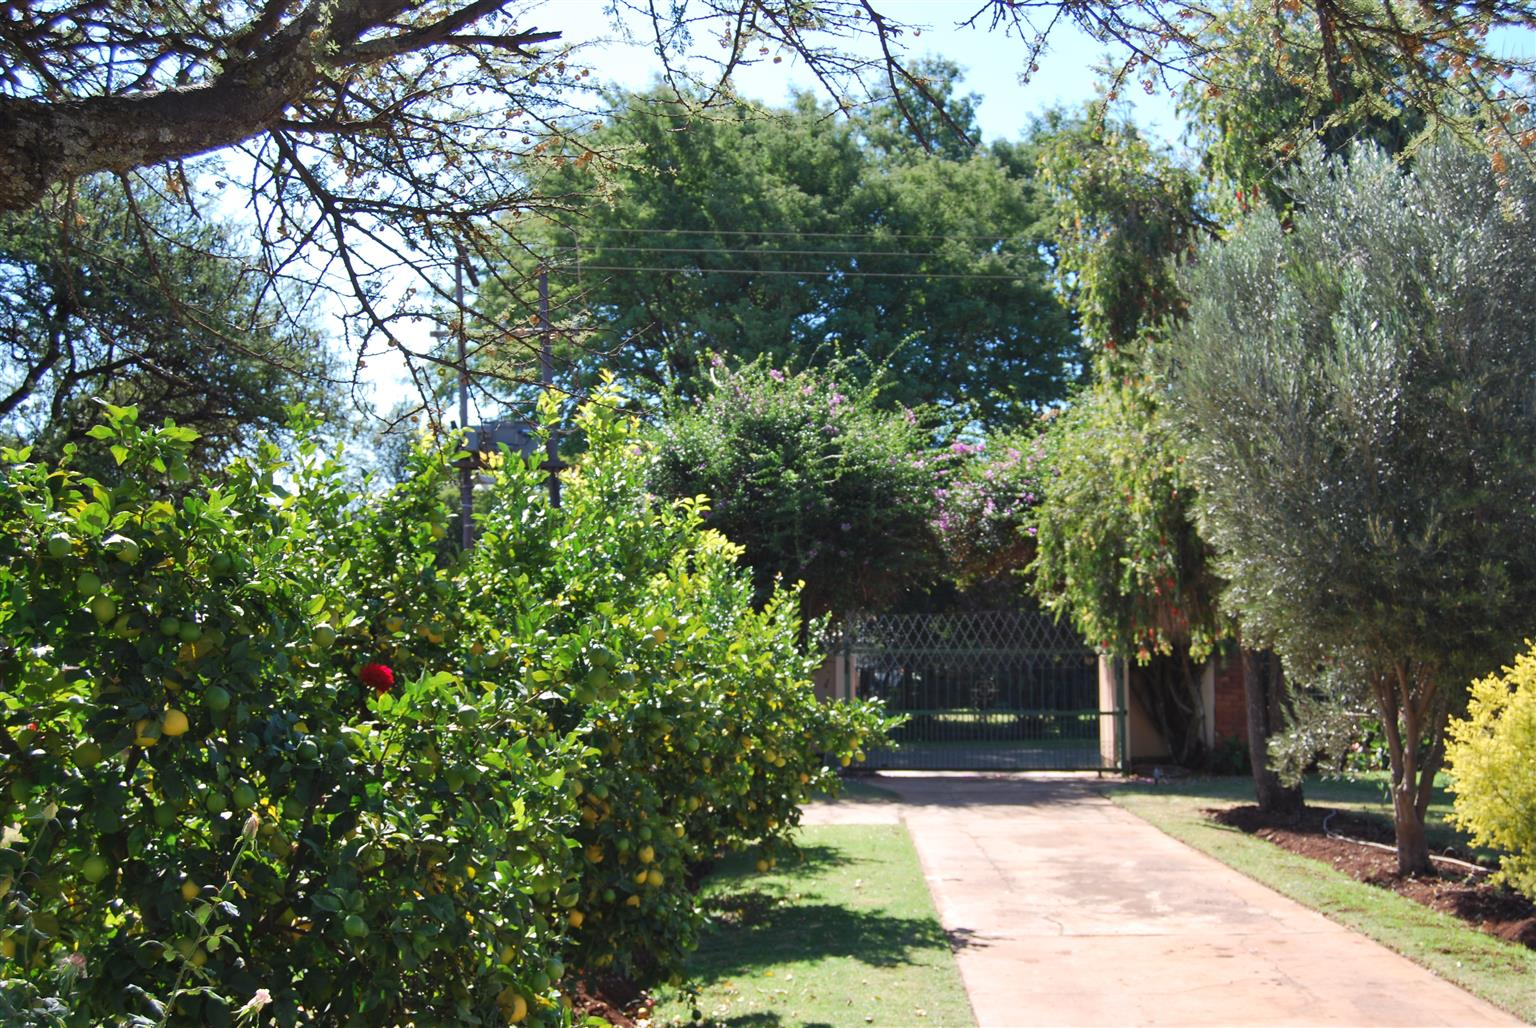 Lemon Tree, Agricultural Farm for small farmer and additional rental income, Pretoria